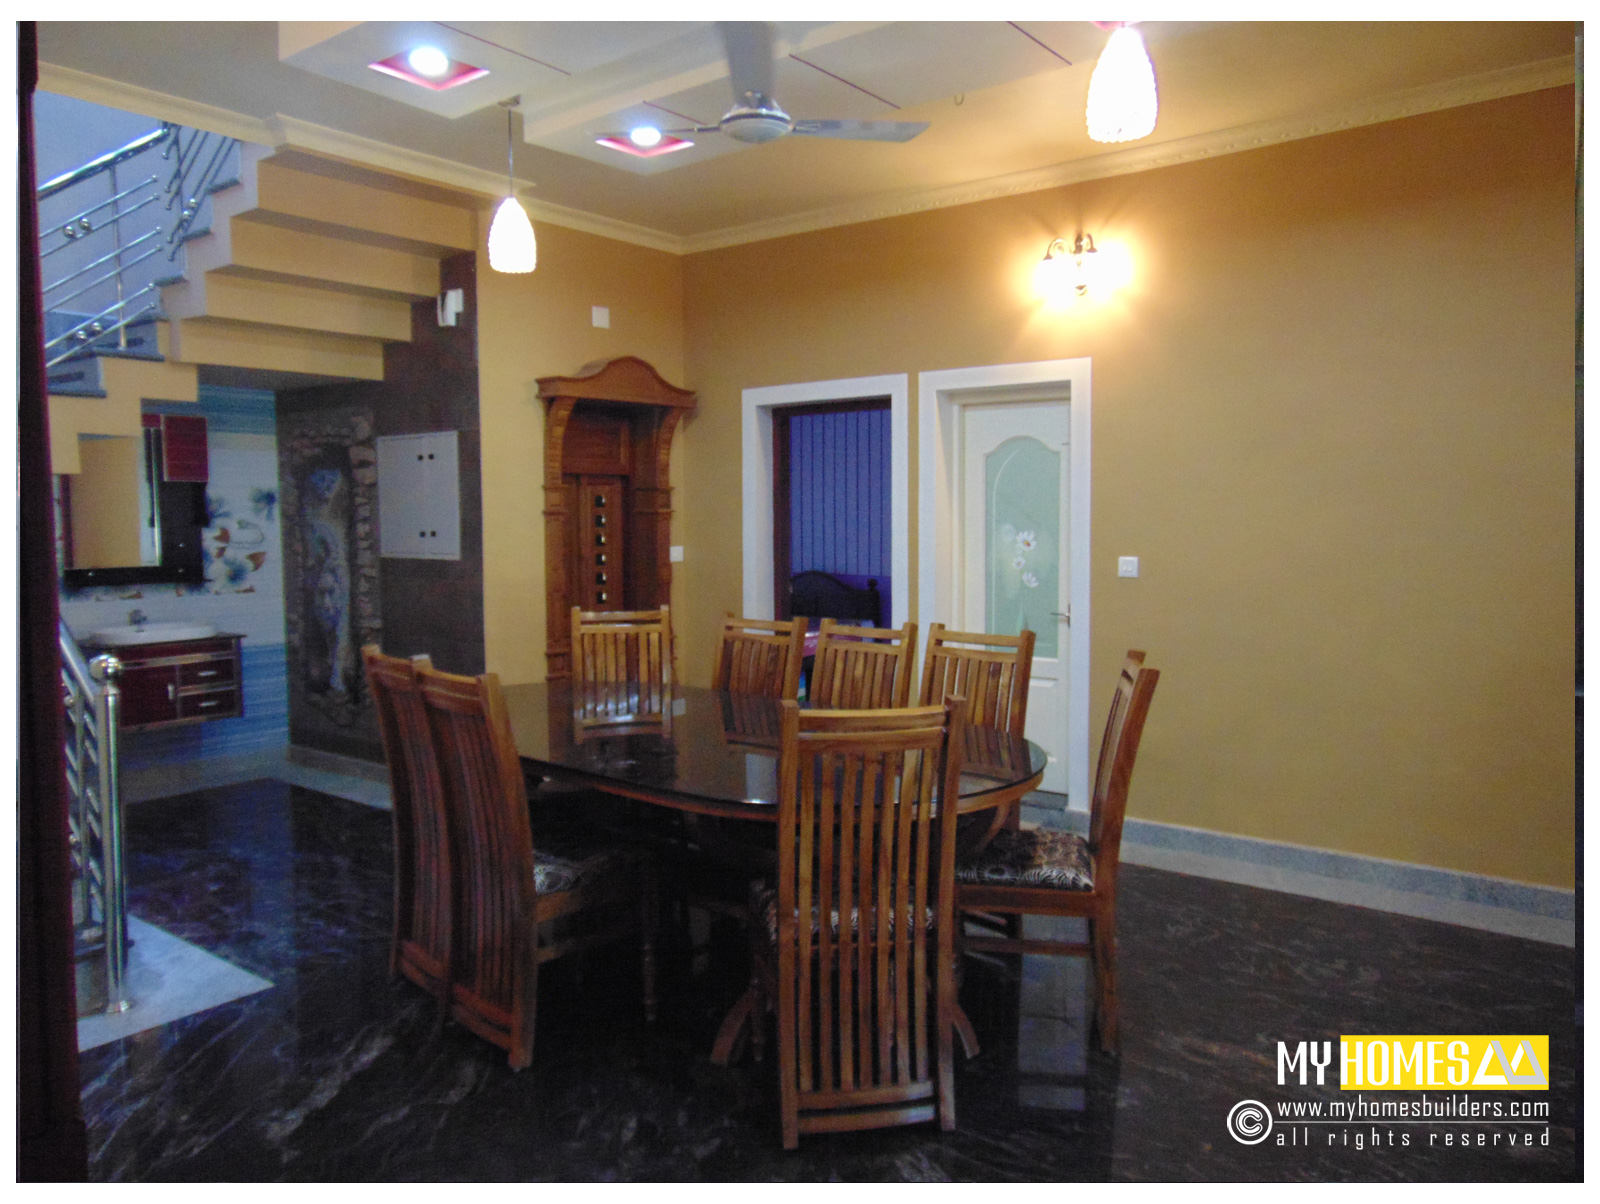 Latest Ideas For Dining Room Design Kerala From My Homes